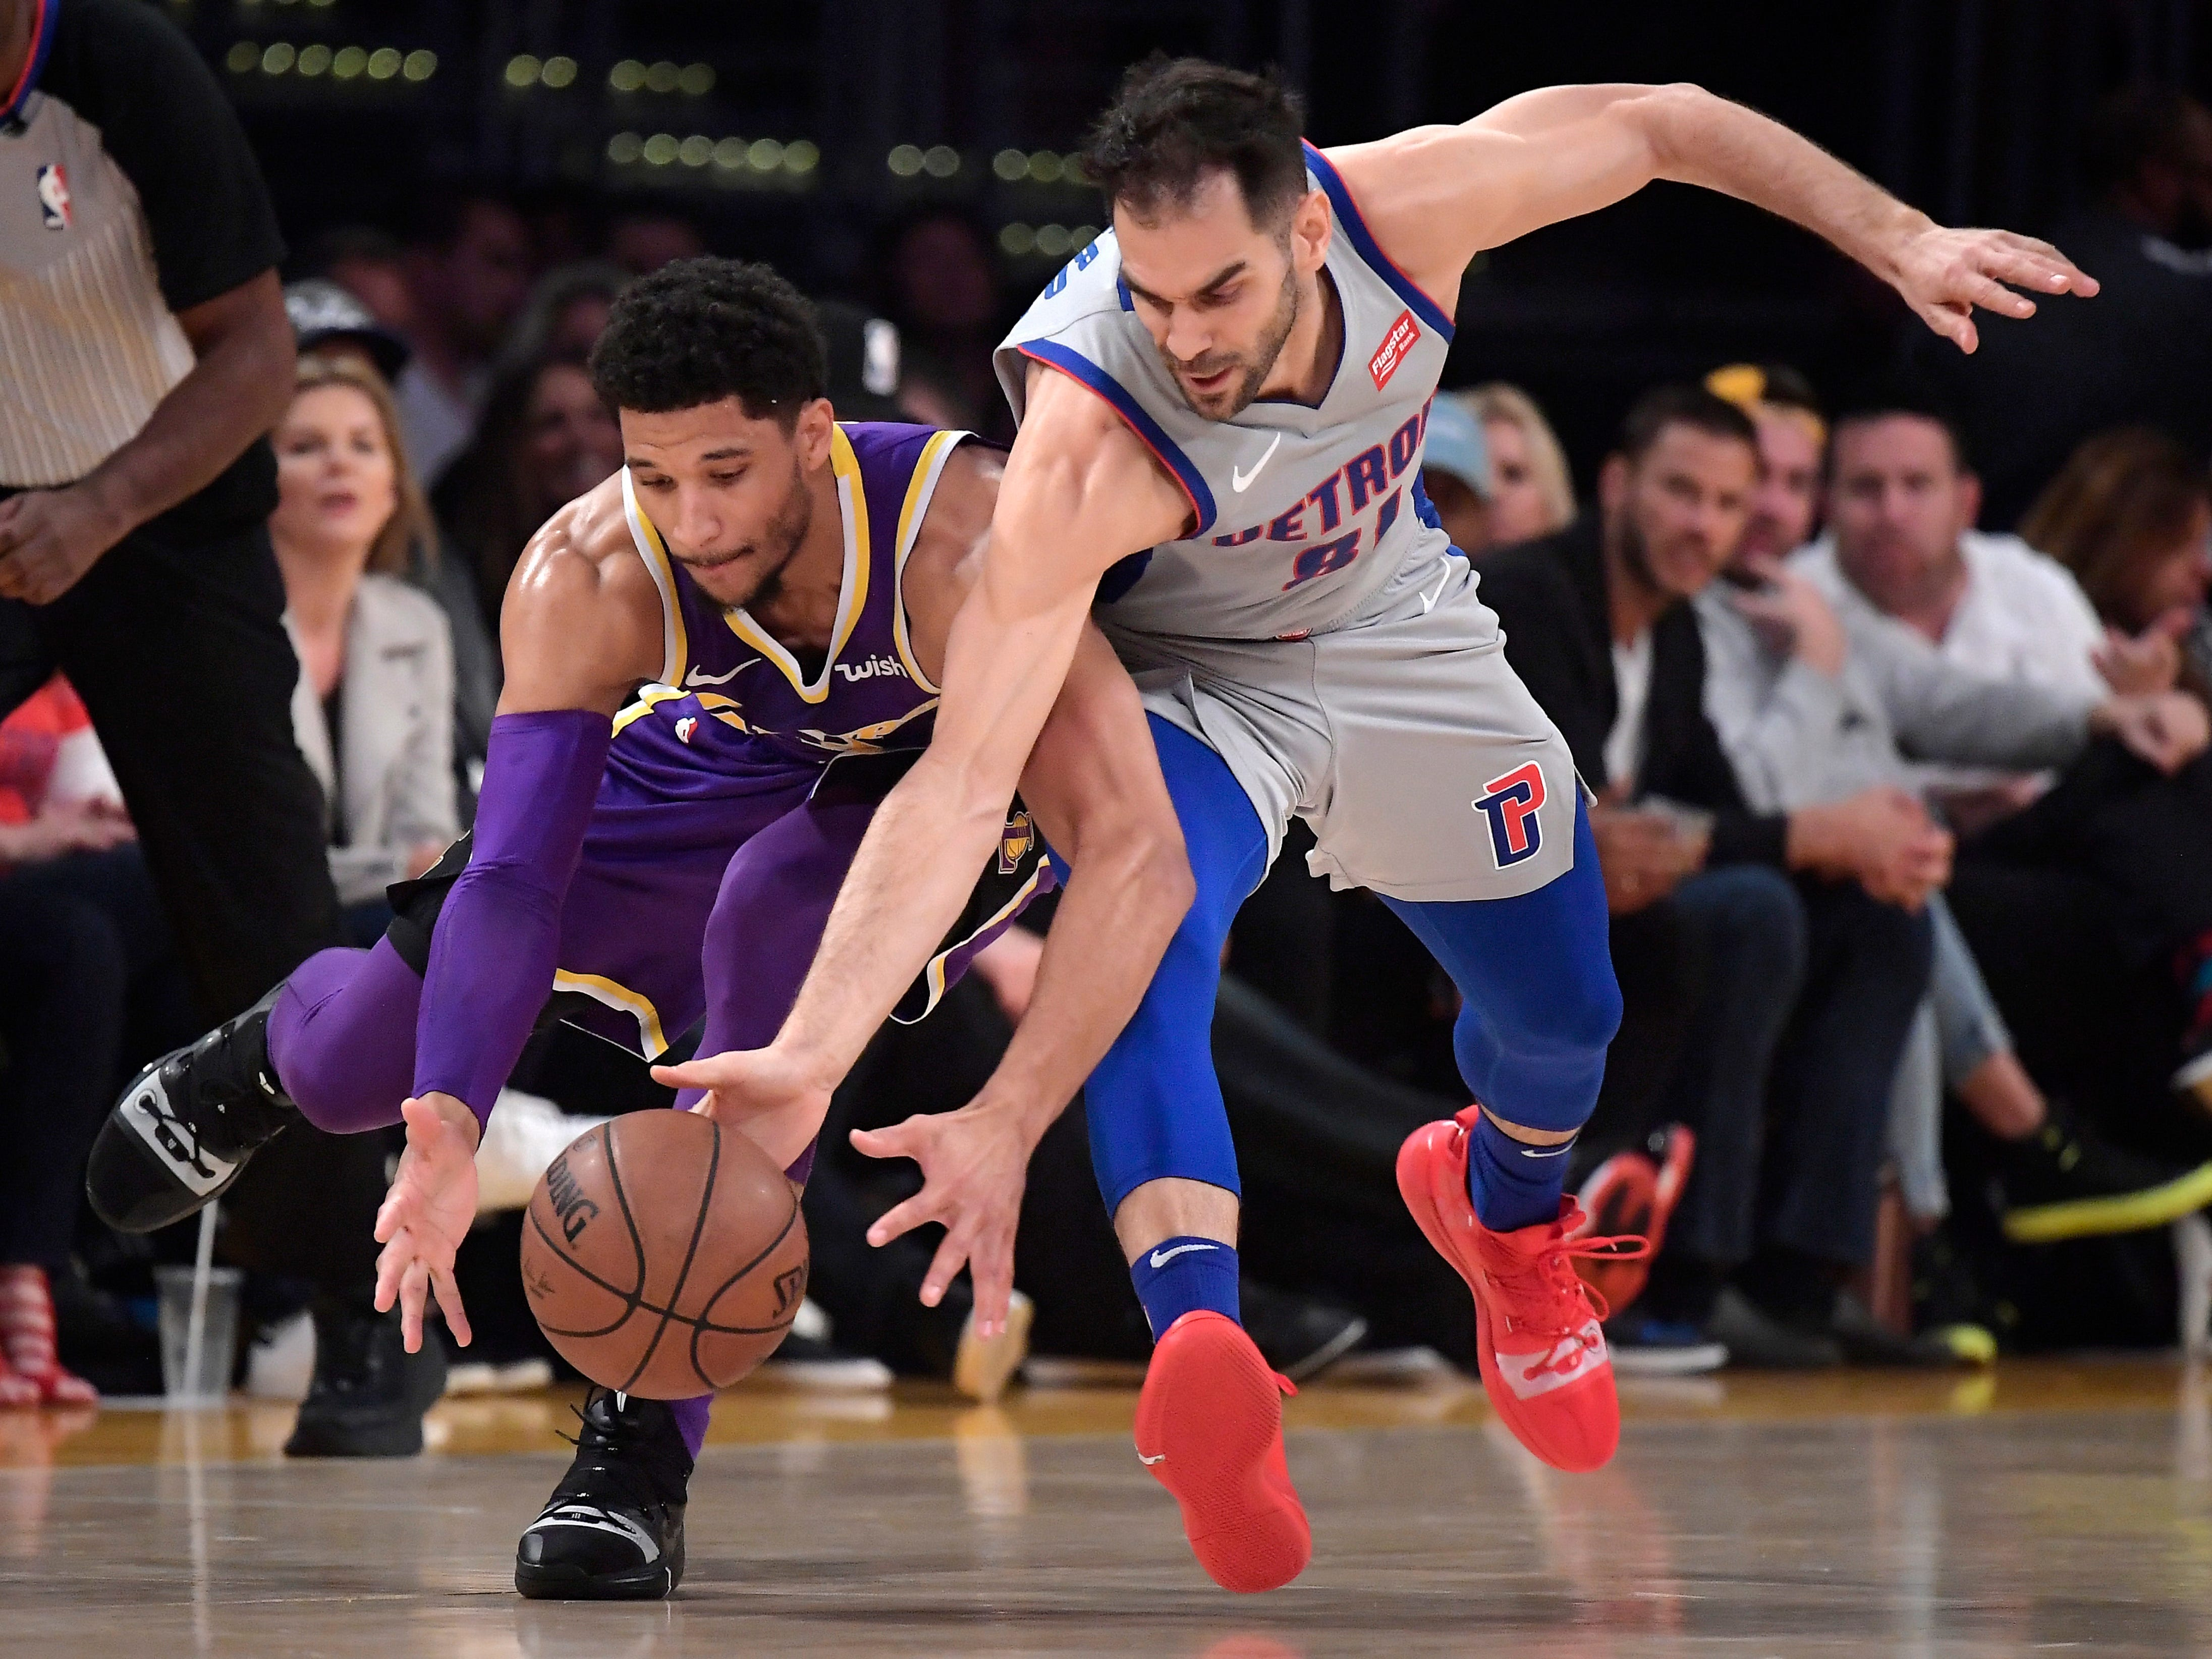 Los Angeles Lakers guard Josh Hart, left, and Detroit Pistons guard Jose Calderon go after a loose ball during the first half of an NBA basketball game Wednesday, Jan. 9, 2019, in Los Angeles. The Lakers won the game, 113-100.